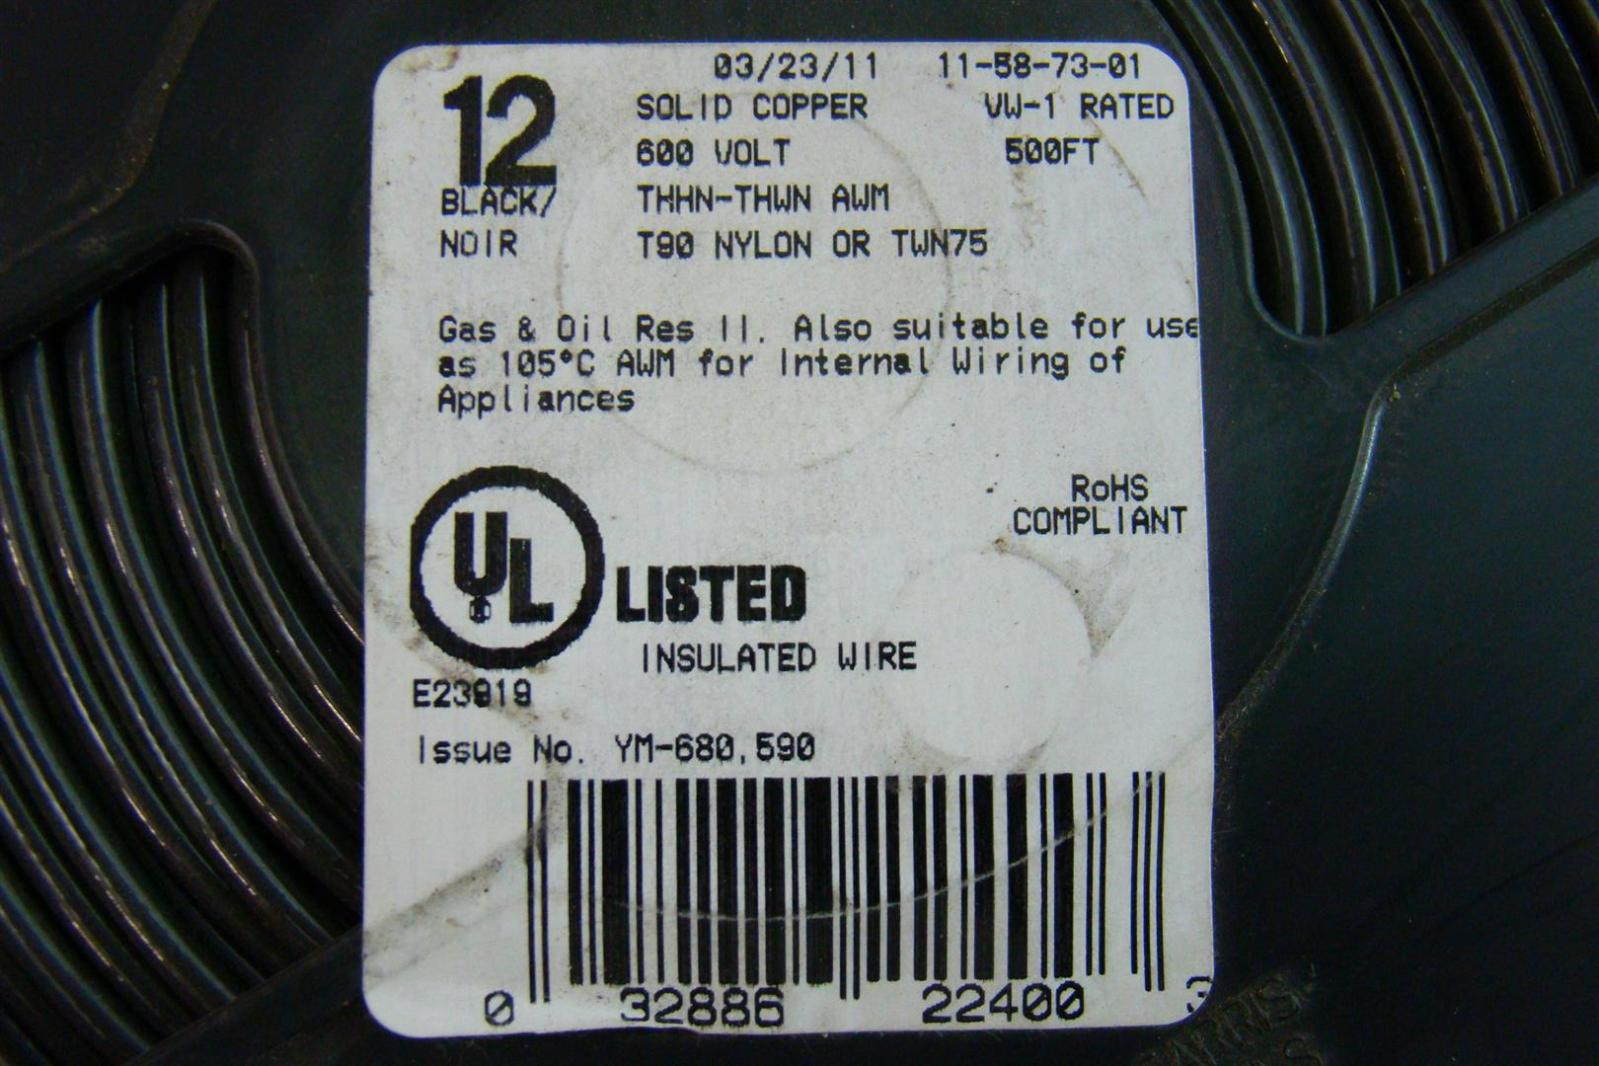 12 Solid Copper 500FT Black T90 Nylon or TWN75 YM-680,590 Insulated ...